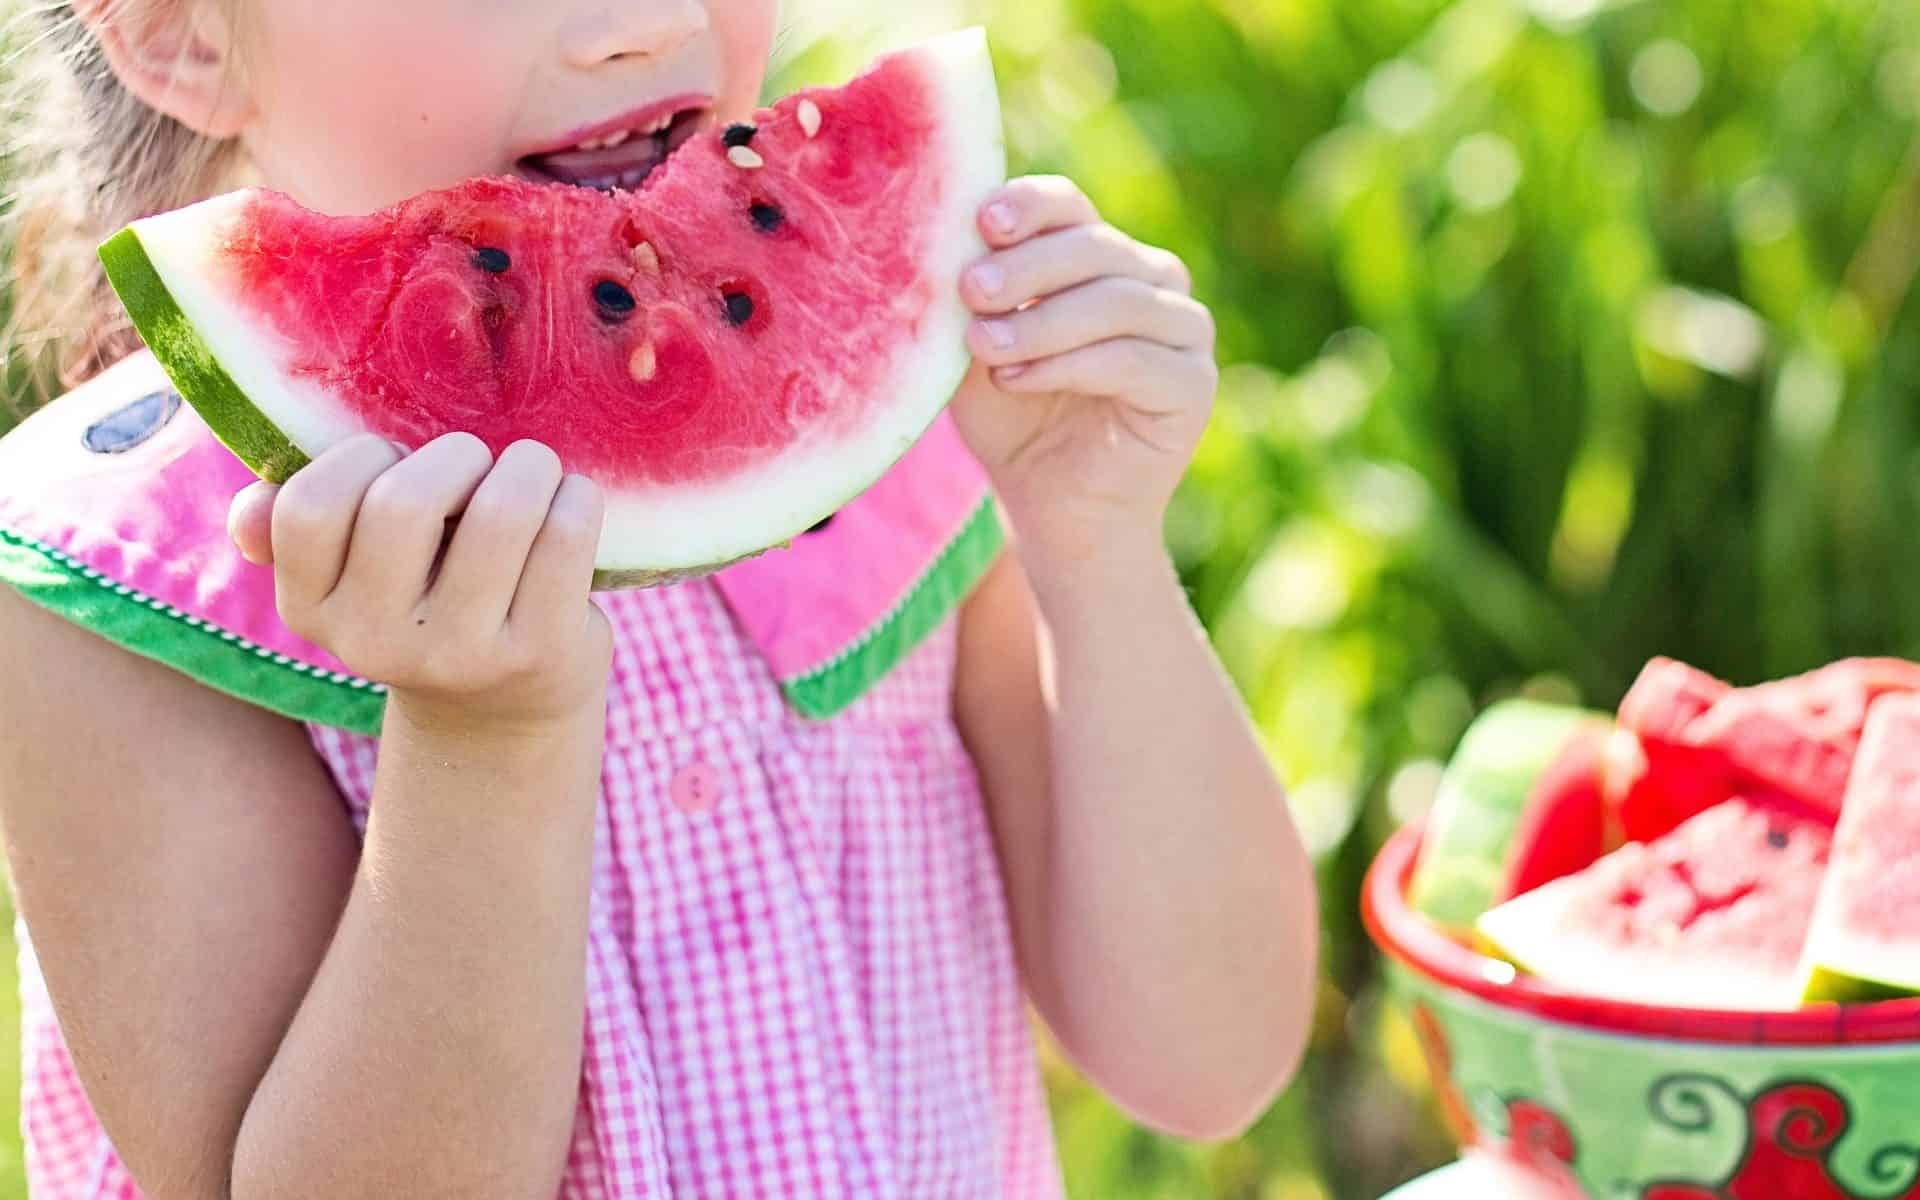 Child eats watermelon